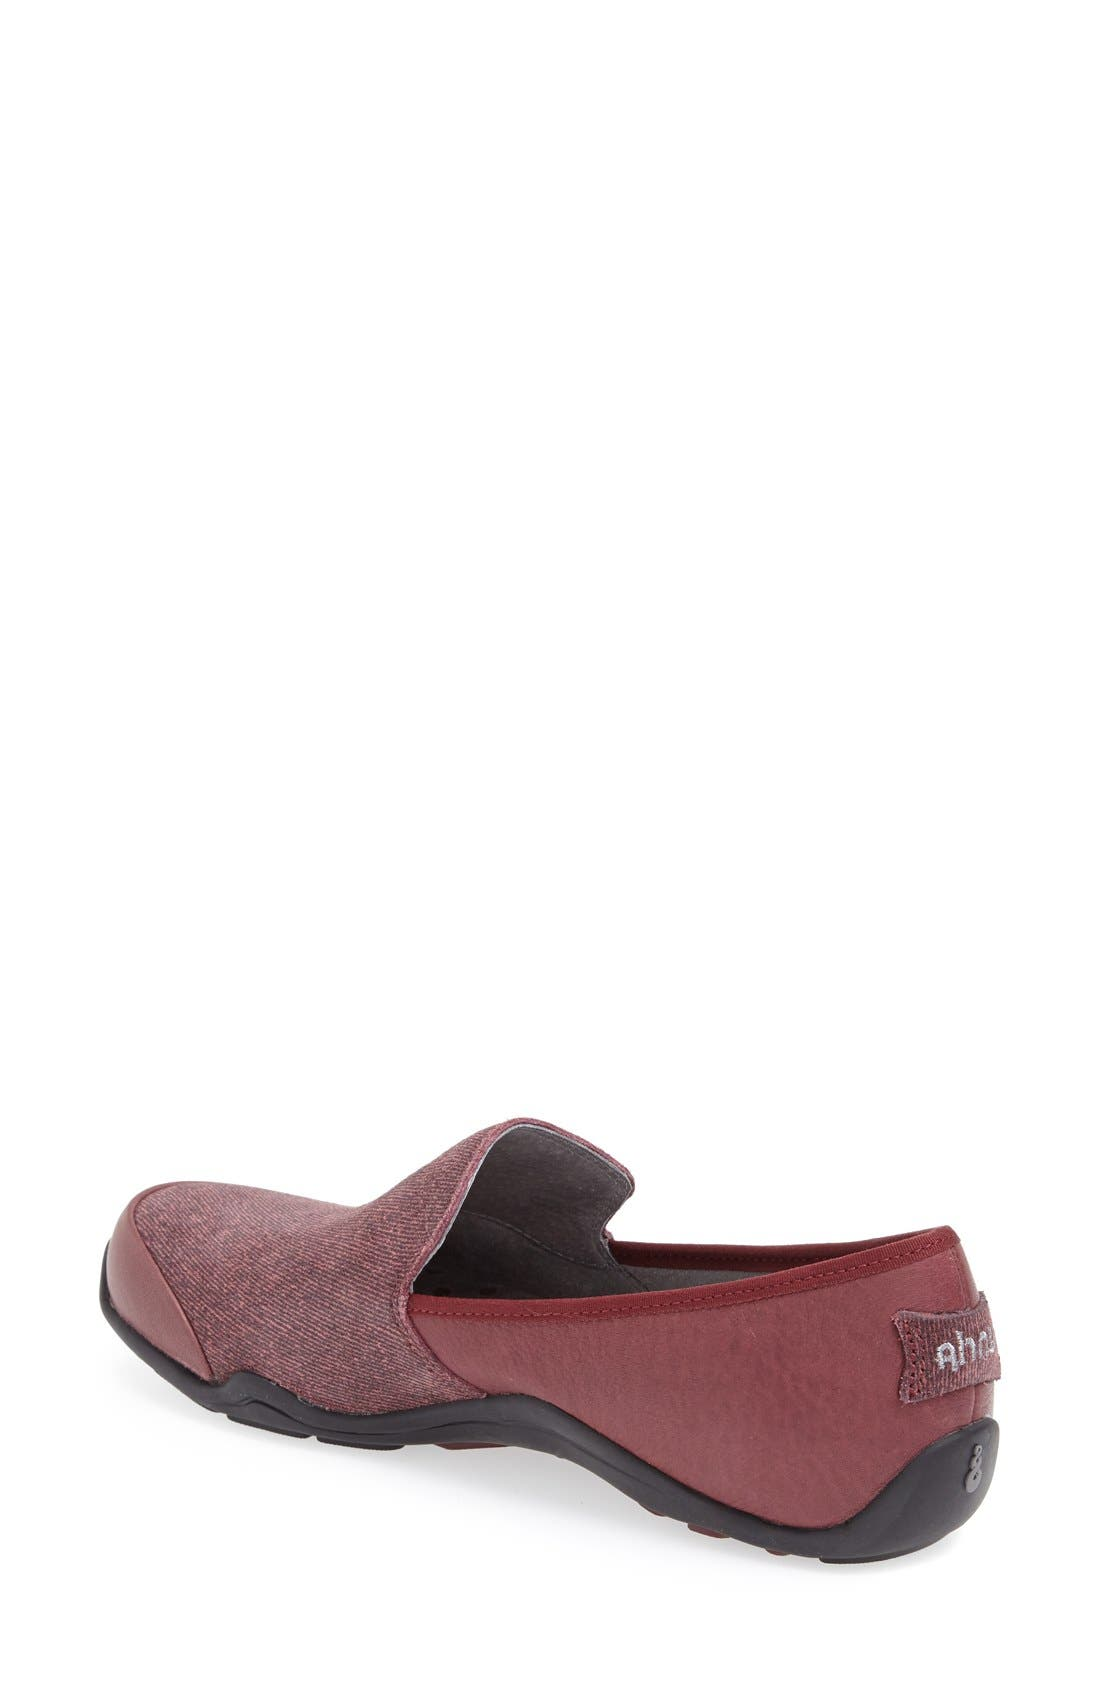 Alternate Image 2  - Ahnu 'Penny' Leather Loafer (Women)